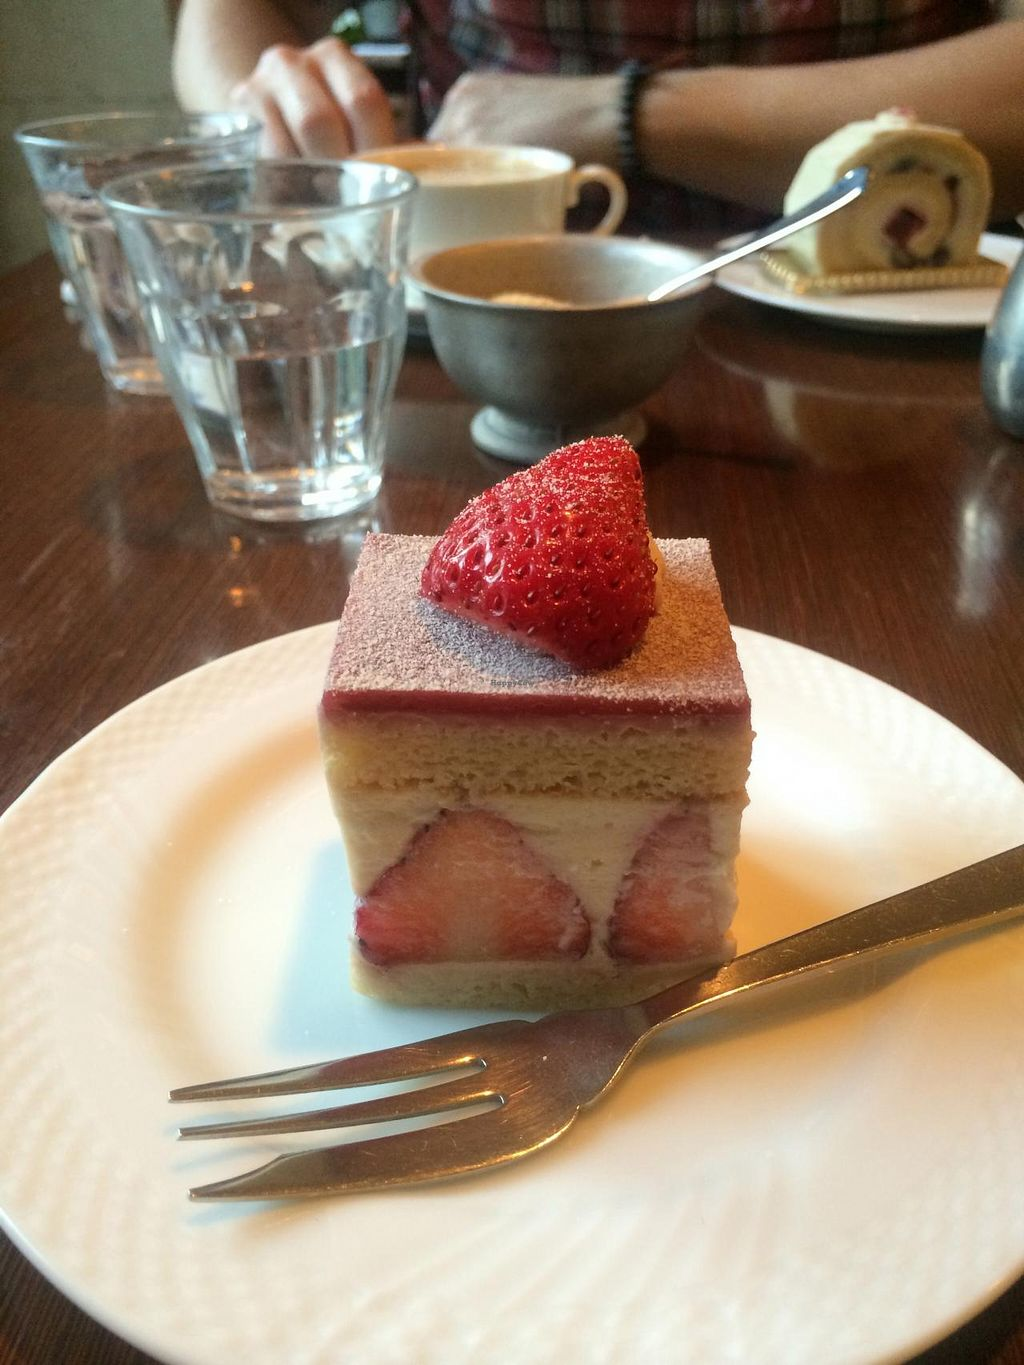 """Photo of Chaya Macrobiotics - Isetan Shinjuku  by <a href=""""/members/profile/Meggie%20and%20Ben"""">Meggie and Ben</a> <br/>Strawberry shortcake (the best one of their desserts!) <br/> December 31, 2014  - <a href='/contact/abuse/image/20523/89107'>Report</a>"""